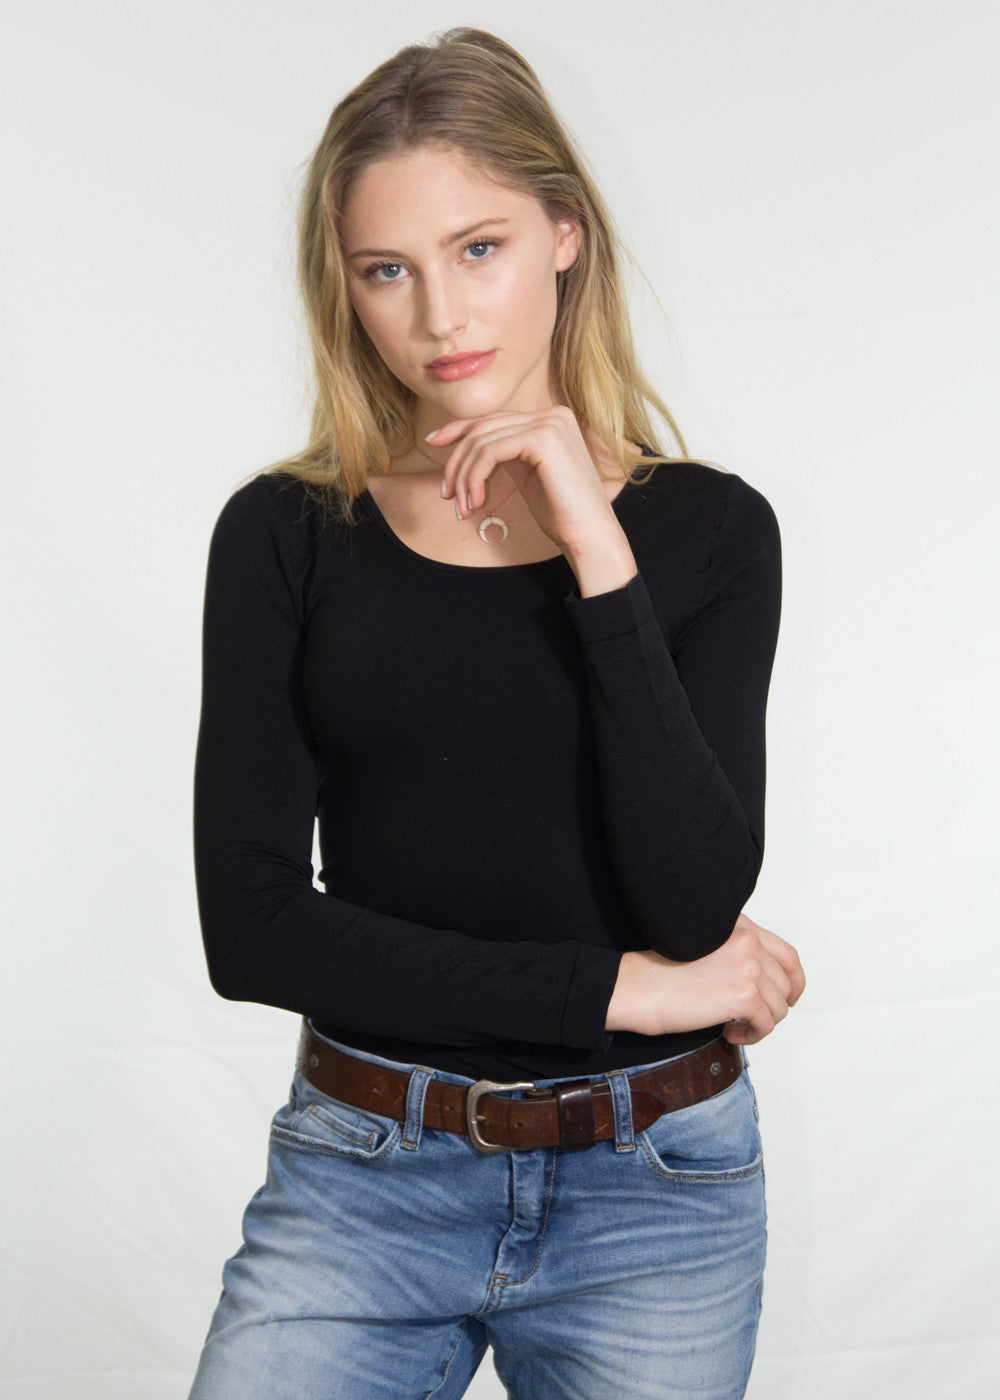 Emma Long Sleeve Top - New Colors!